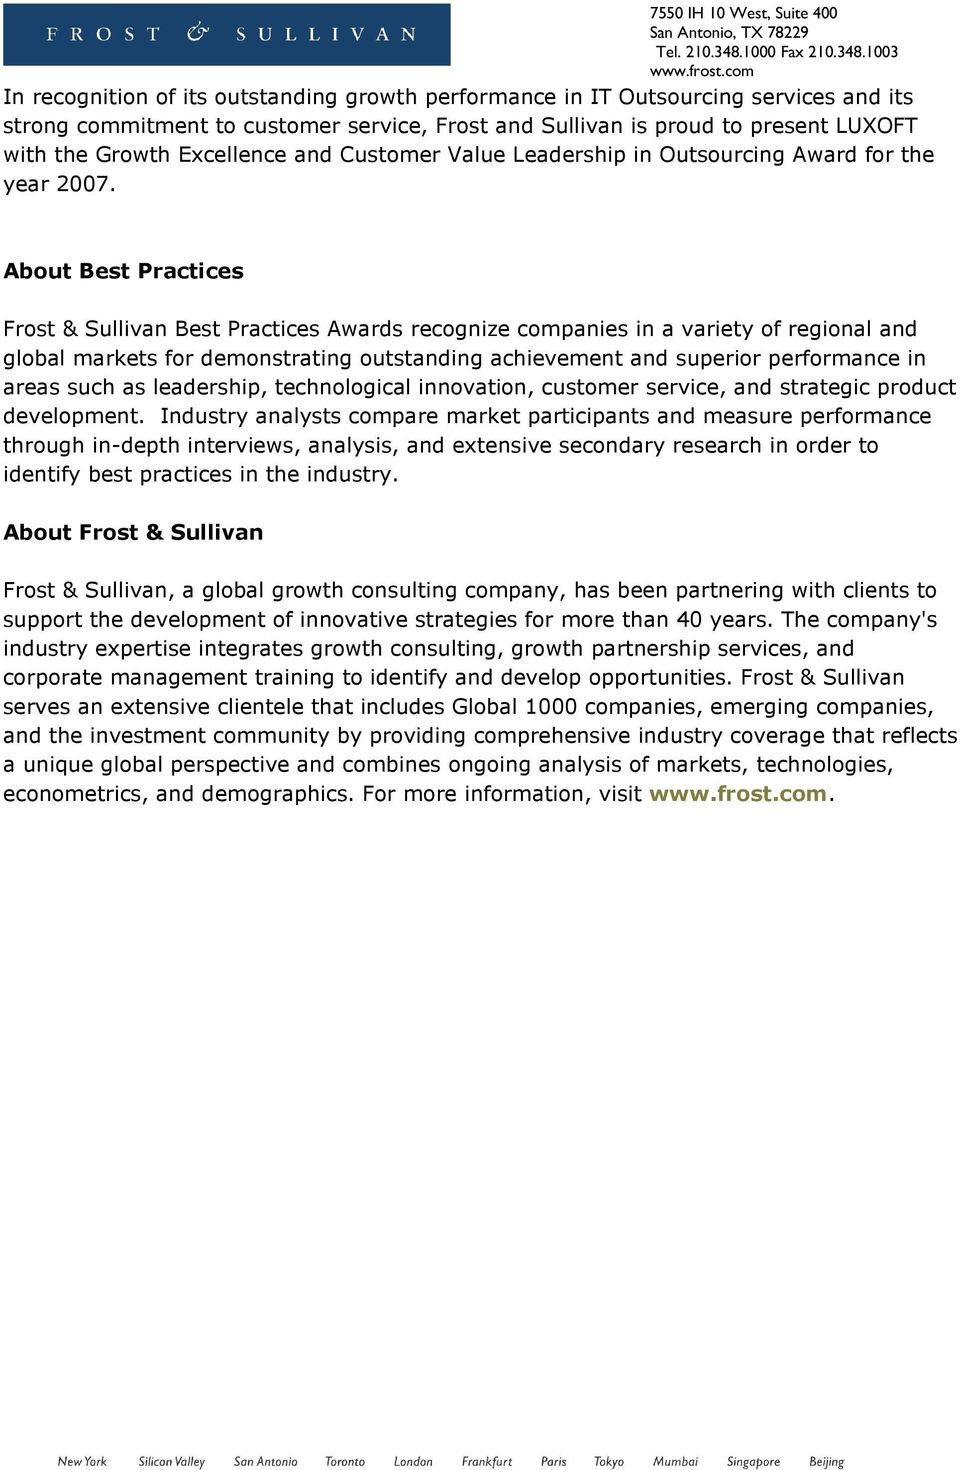 About Best Practices Frost & Sullivan Best Practices Awards recognize companies in a variety of regional and global markets for demonstrating outstanding achievement and superior performance in areas